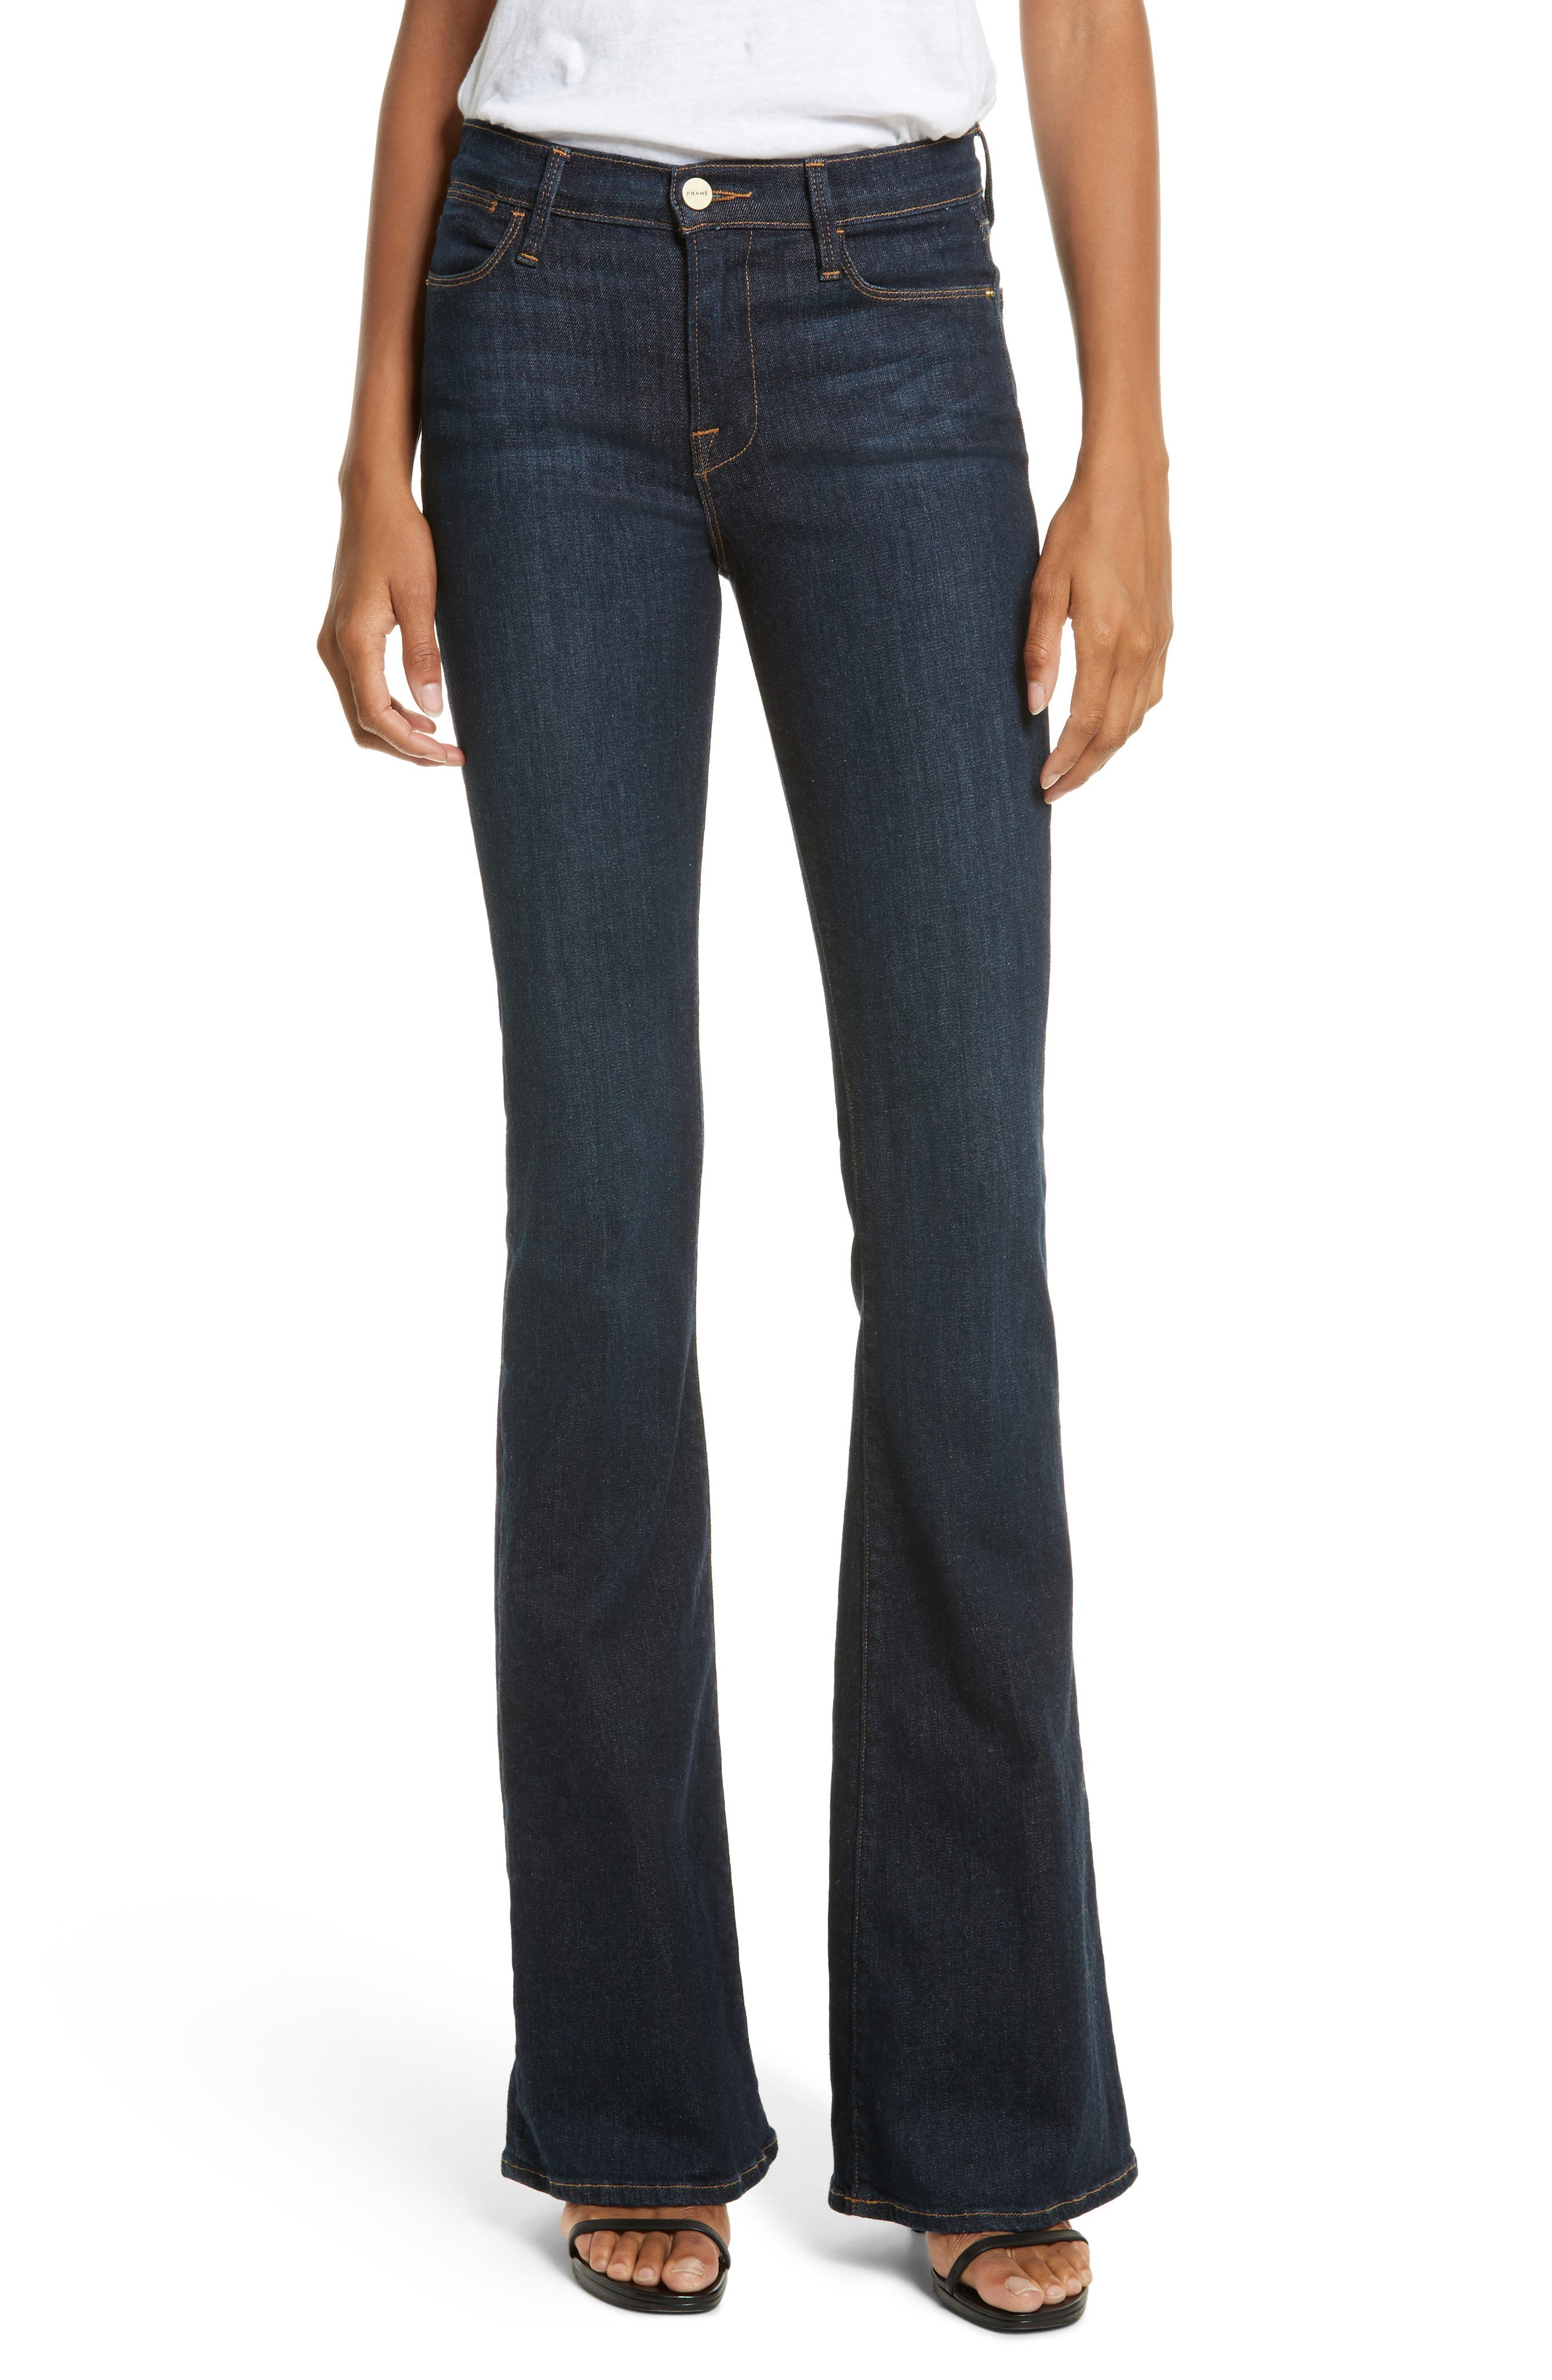 FRAME, 'Le High Flare' Jeans, Main thumbnail 1, color, SUTHERLAND